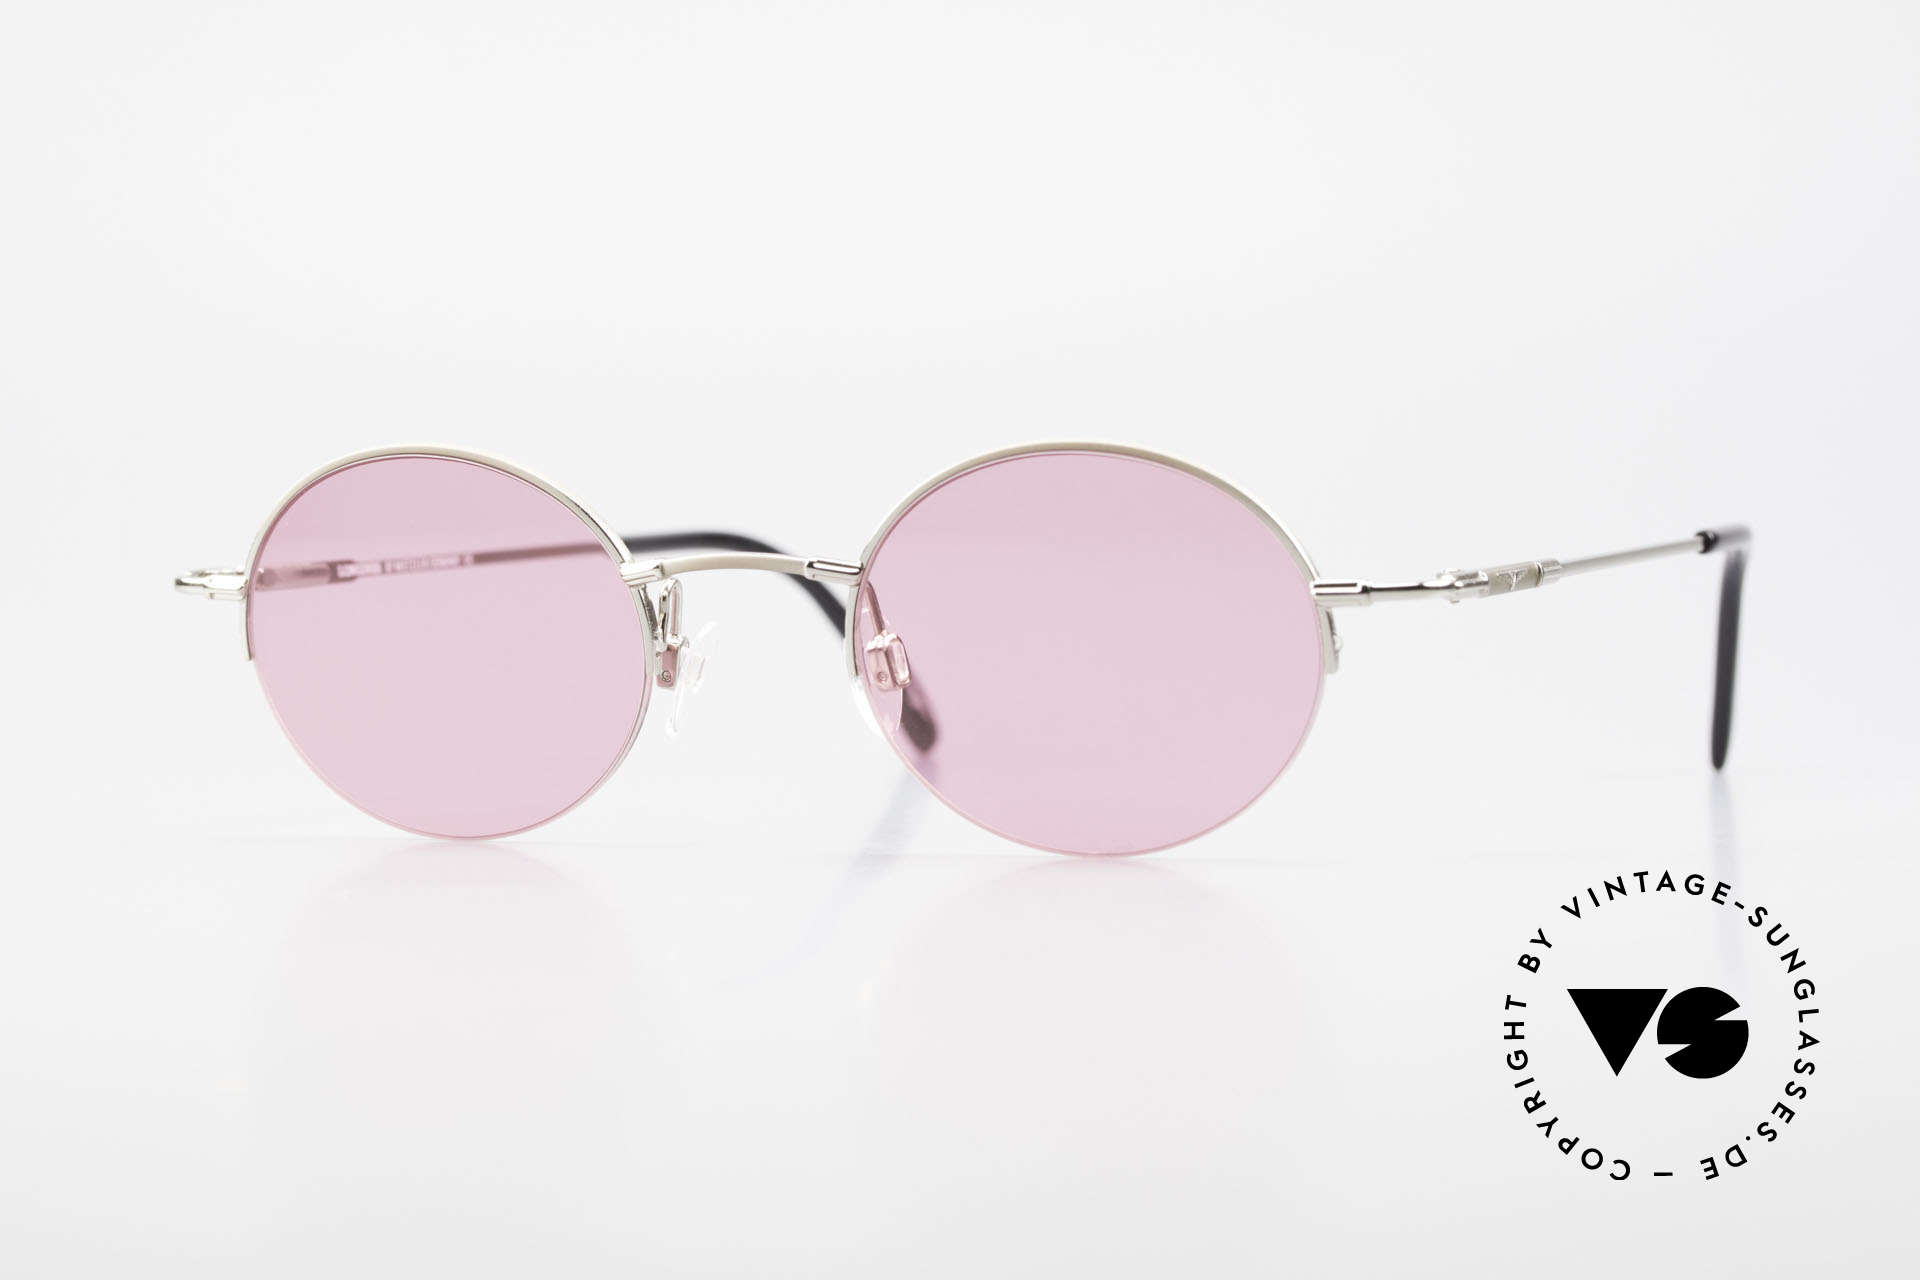 Longines 4363 Pink Sunglasses Oval Round, round oval Longines sunglasses from the late 1990's, Made for Men and Women